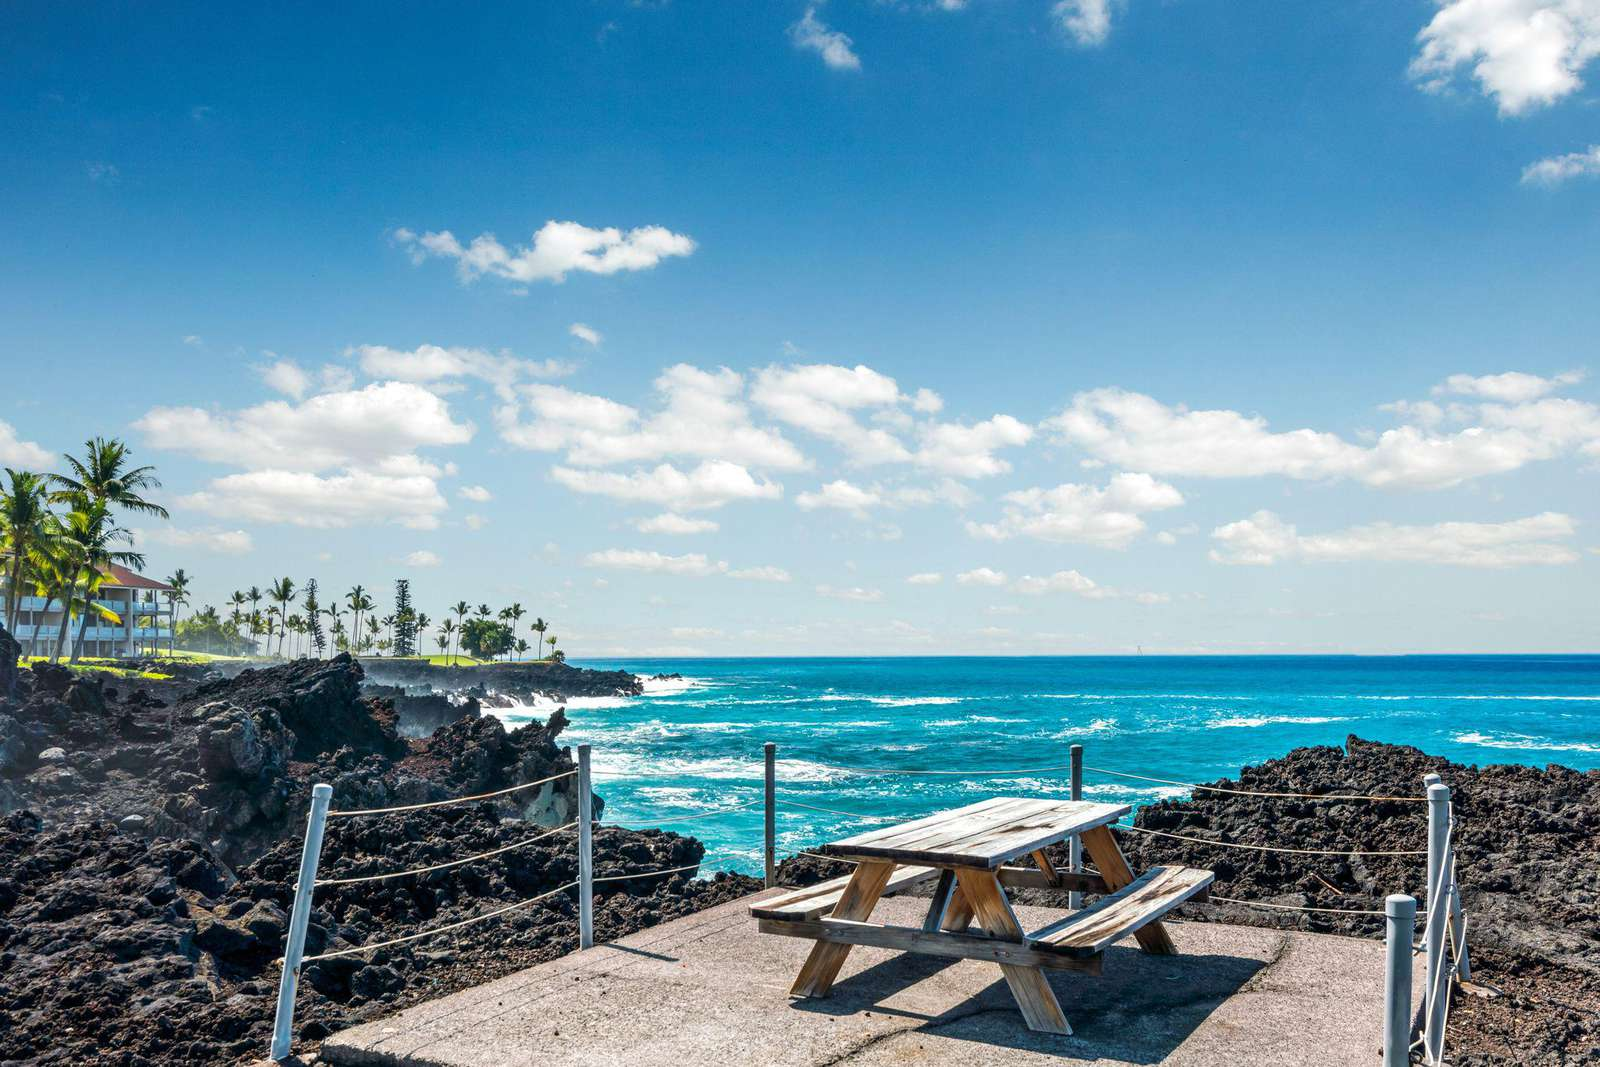 There is a paved trail along the shoreline, with this perfect spot to sit and have your lunch.